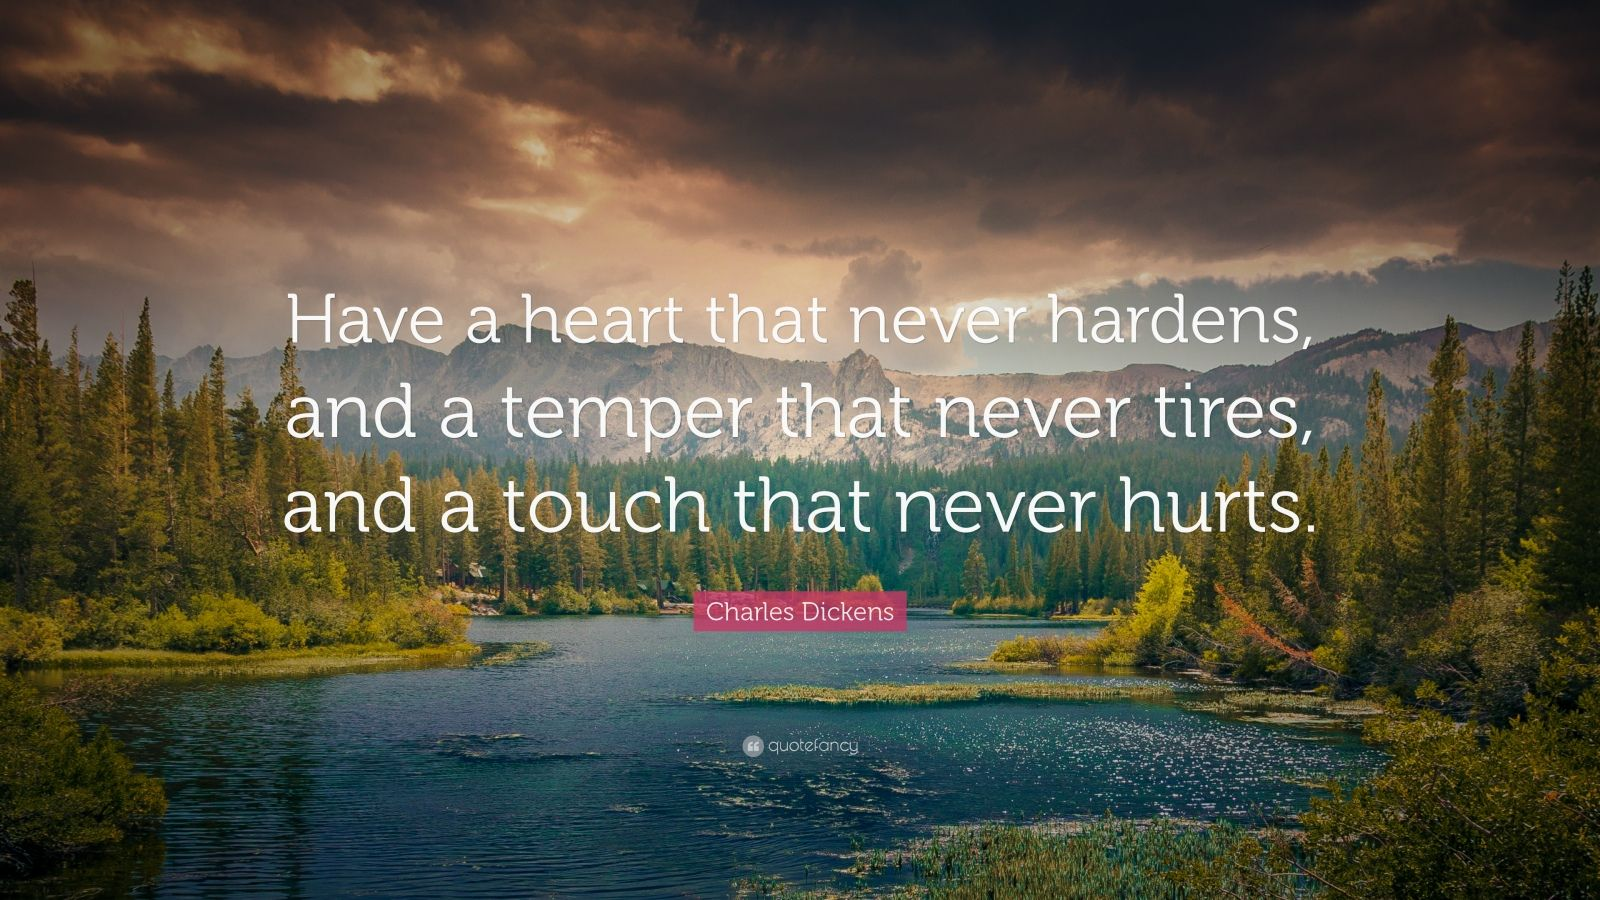 "Charles Dickens Quote: ""Have a heart that never hardens, and a temper that never tires, and a touch that never hurts."""